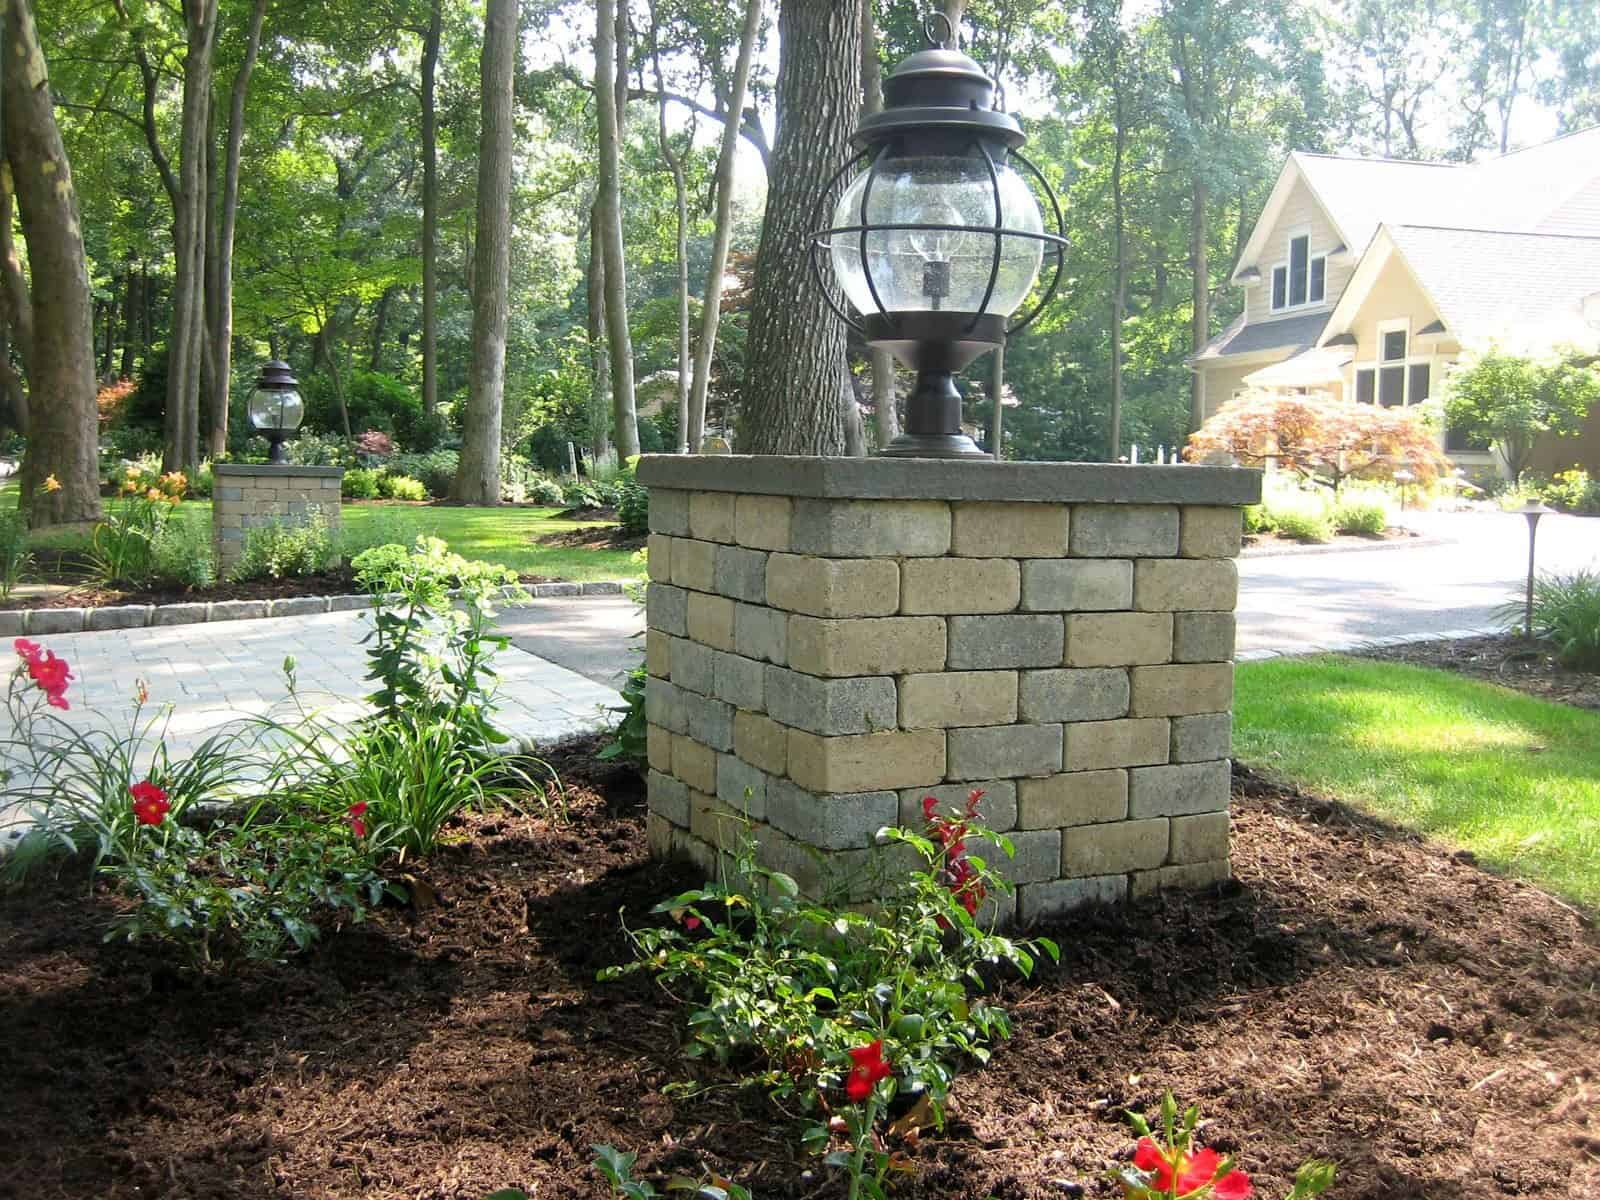 Entrance Piers - 2' x 2' x 2' Masonry Pier - Unilock Brussels Block - Color - Sandstone/Limestone with Thermal Blustone Cap and Fixture - Dix Hills, Long Island NY